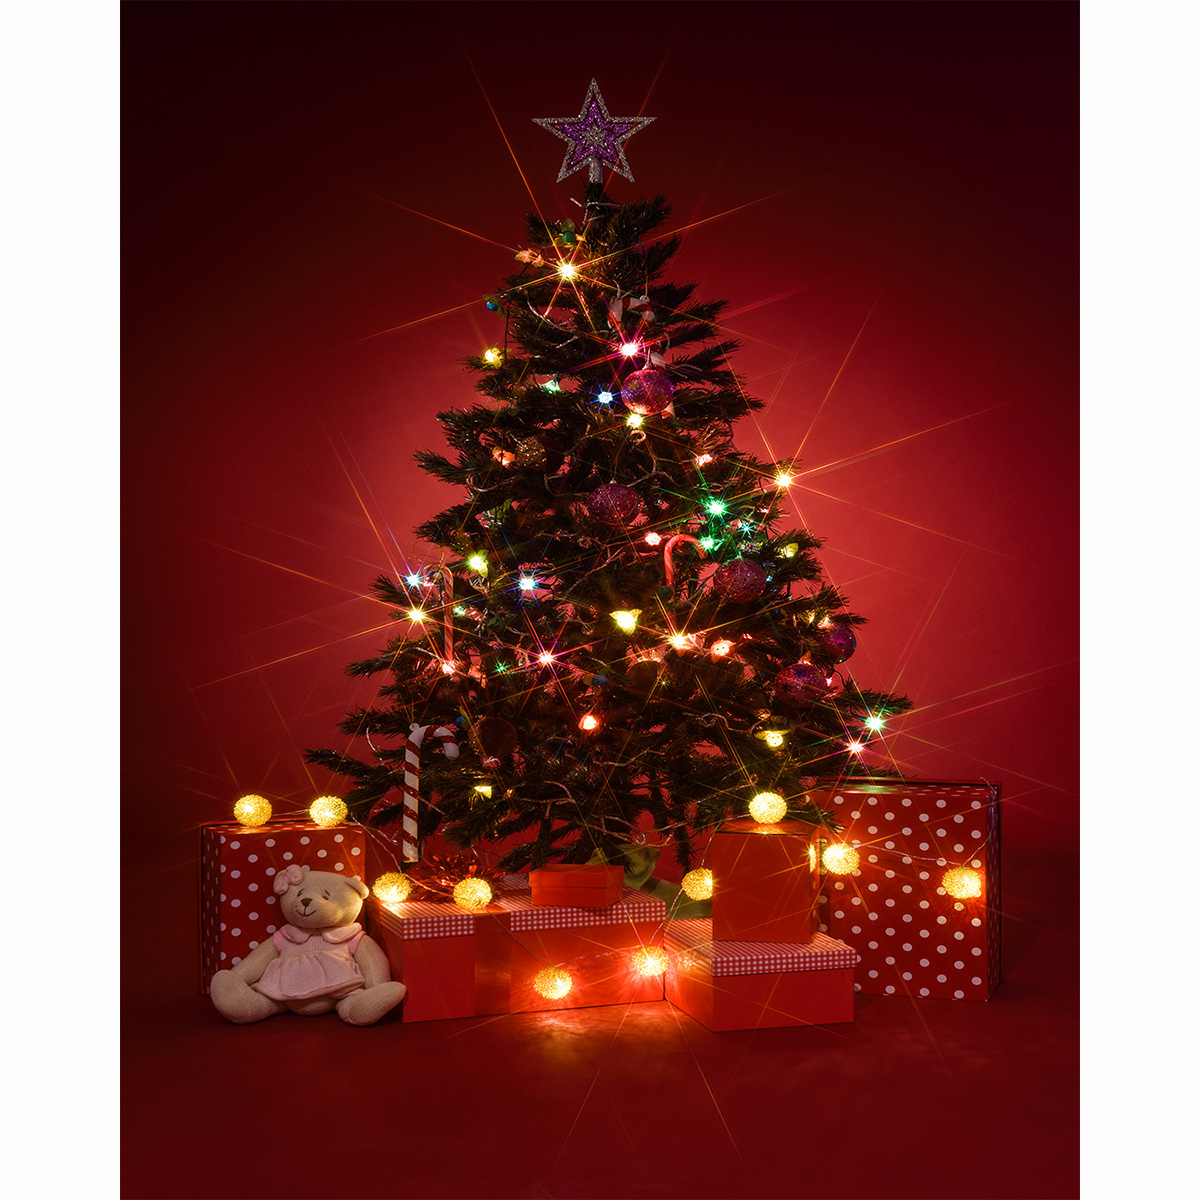 Christmas Tree Photography Background Xmas Winter Red Xmas New Year